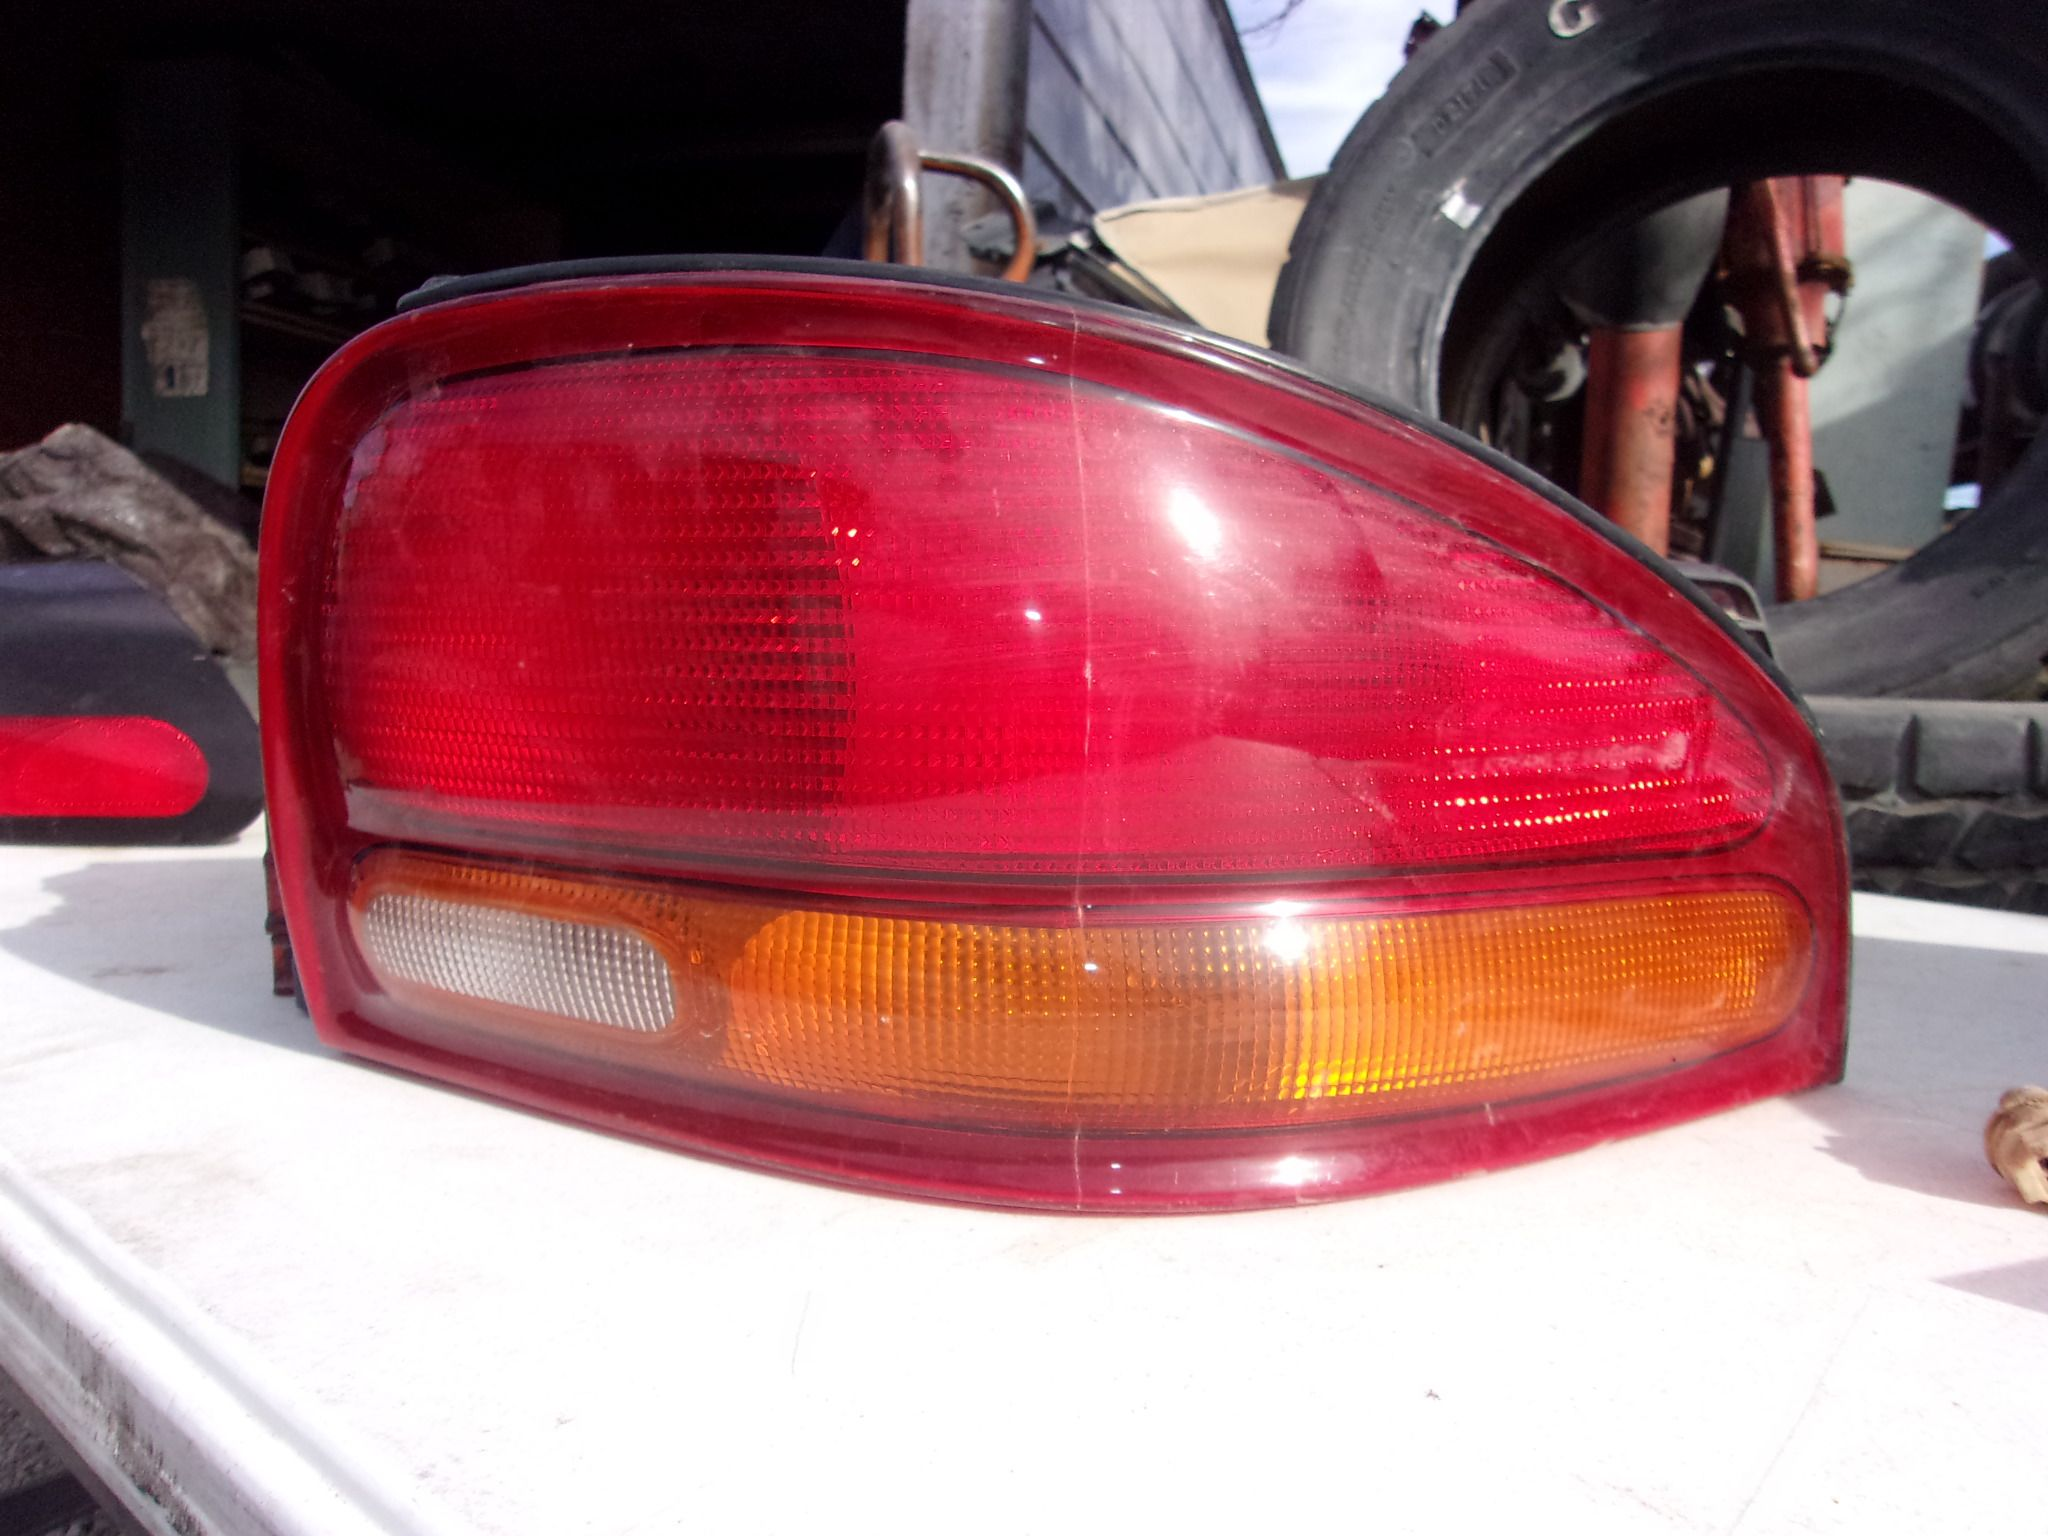 1995 1999 Dodge Stratus Driver Side Tail Light 25 Dodge Stratus Tail Light Car Parts For Sale